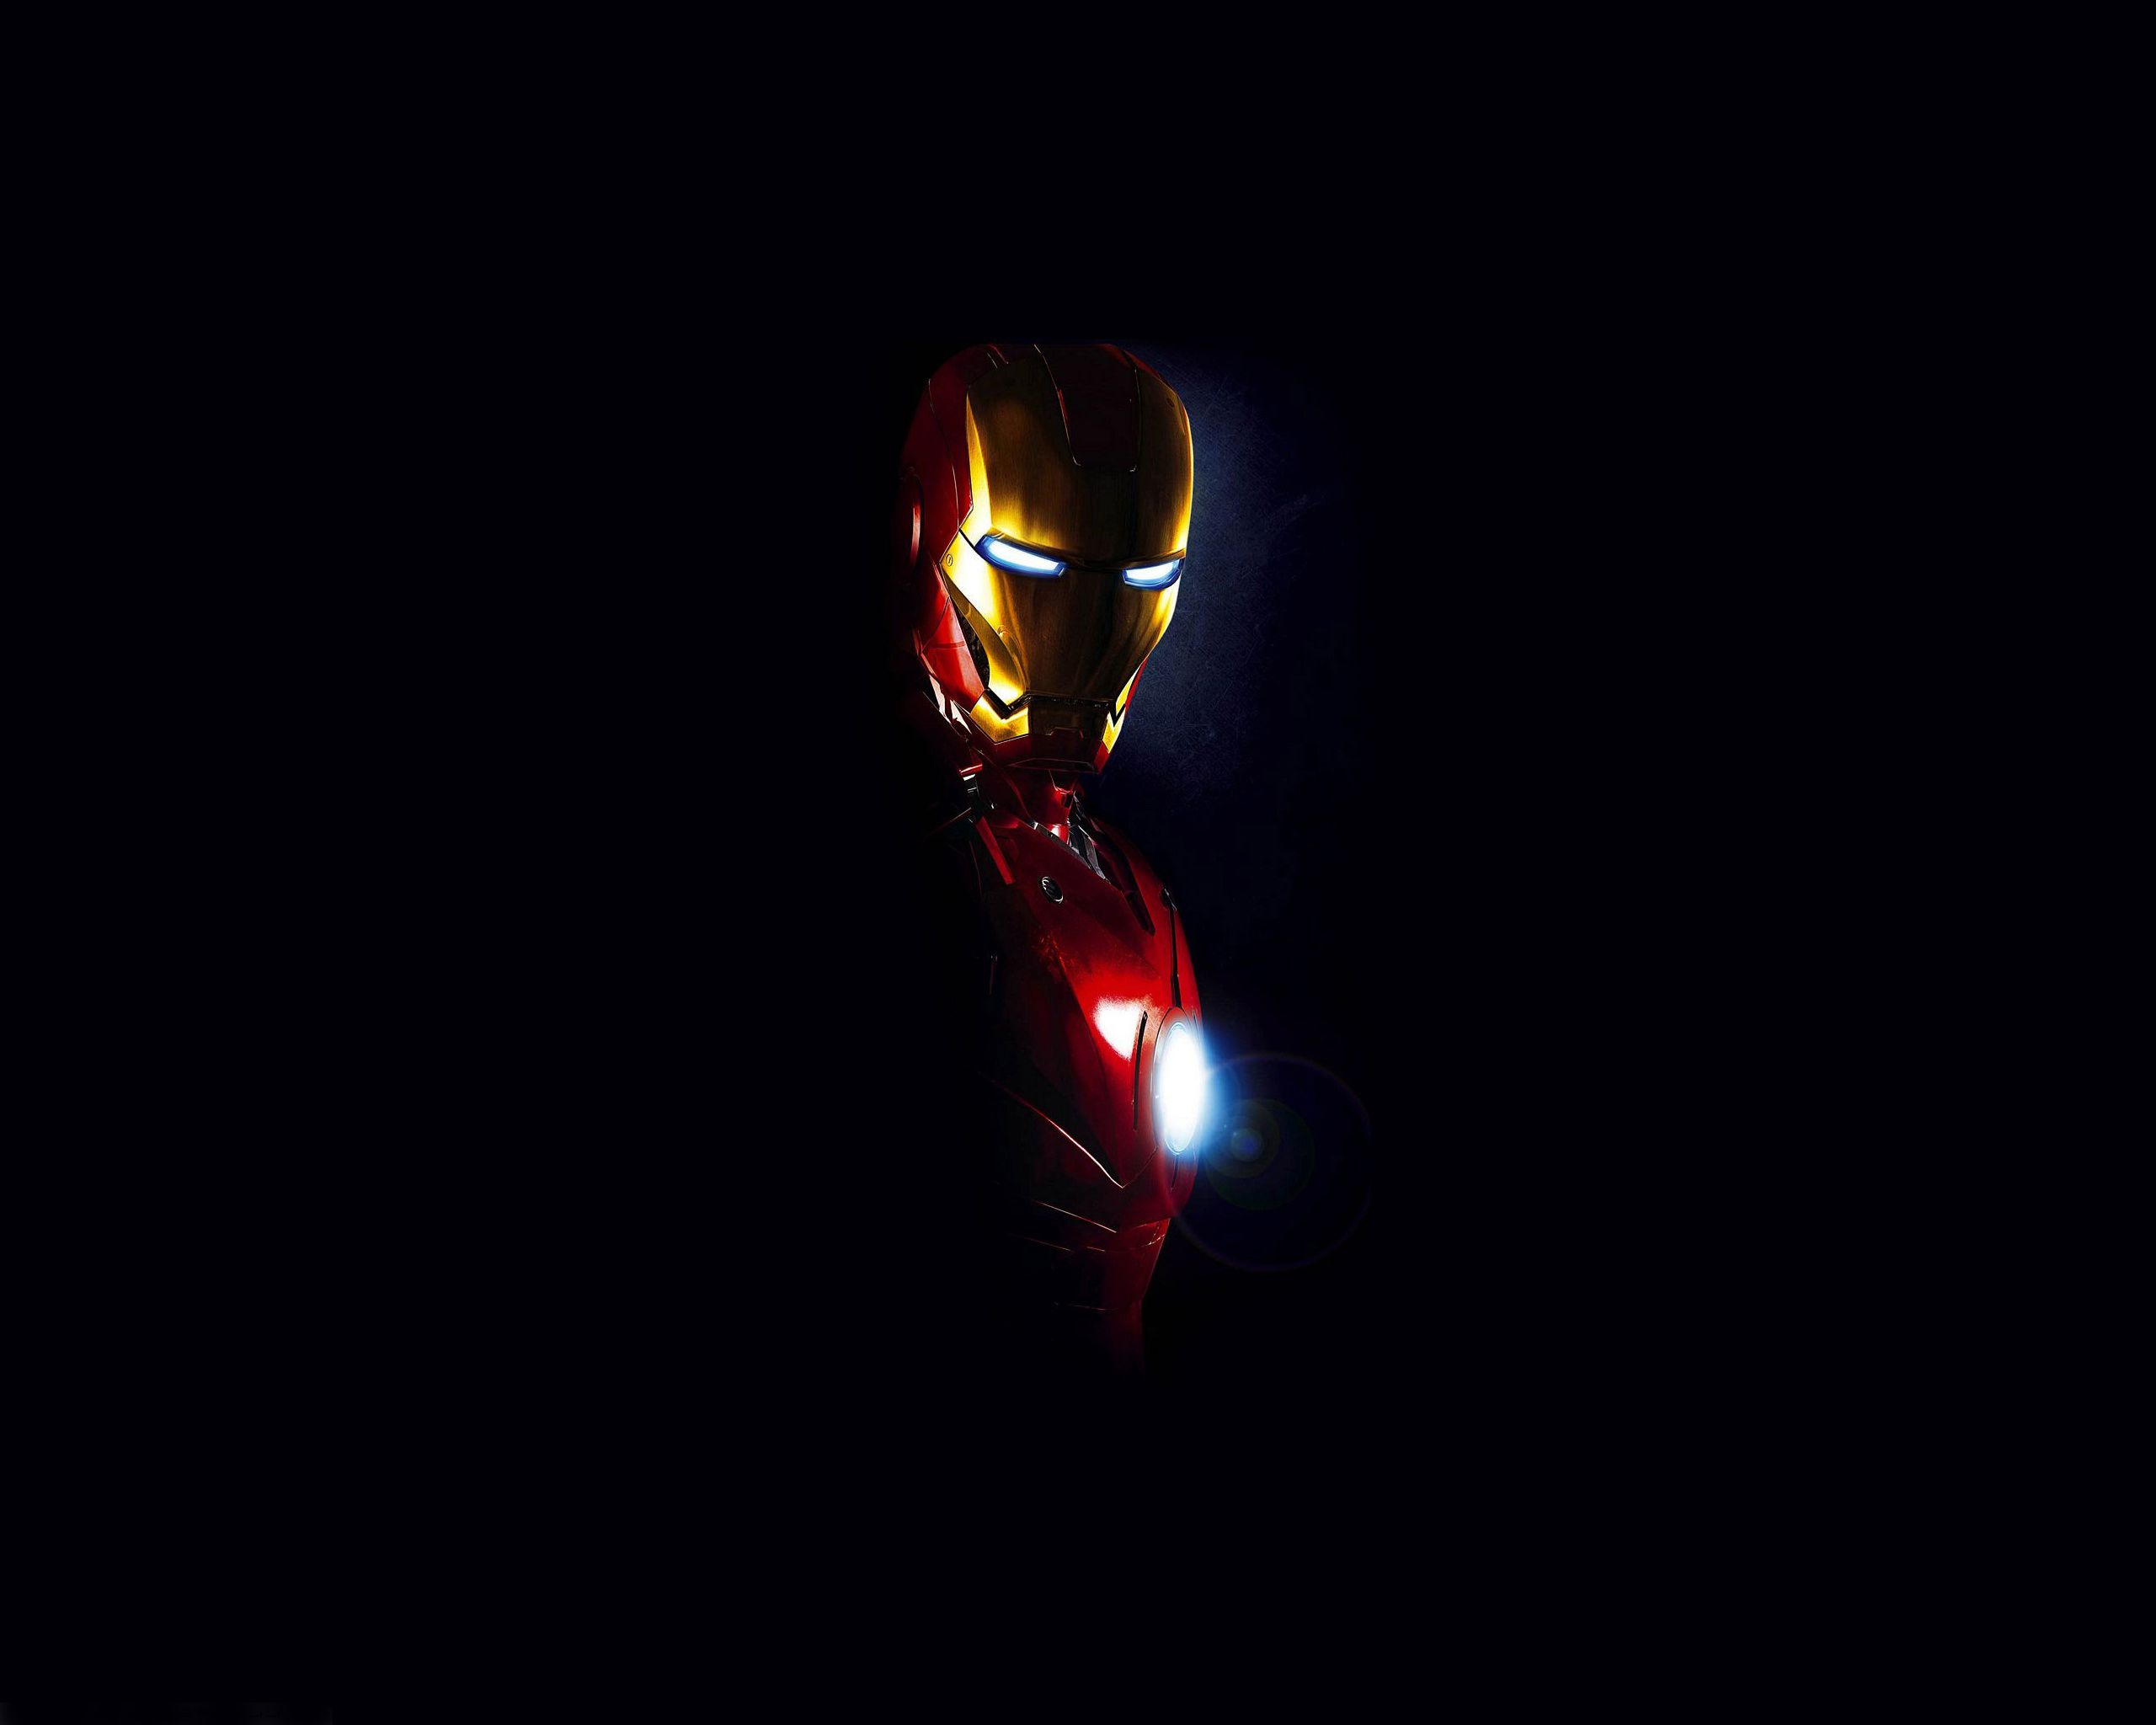 Cool Picture Of Iron Man Photo With Dark Background Wallpapers